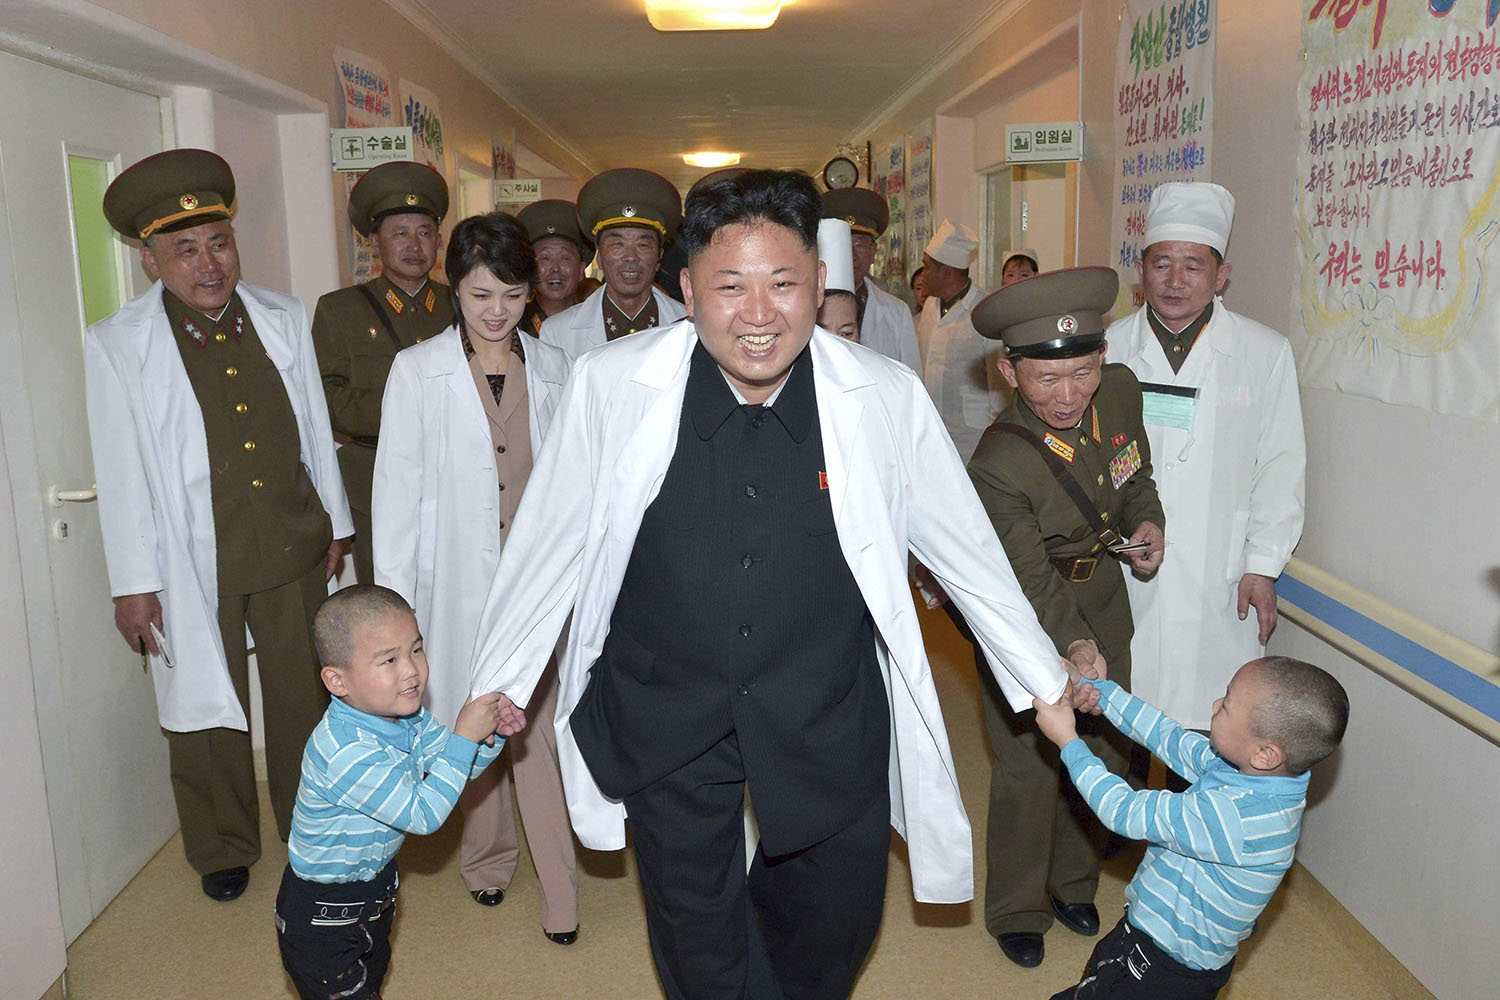 North Korean leader Kim Jong Un plays with children during a visit to the Taesongsan General Hospital in Pyongyang, in an undated photo released on May 19, 2014.